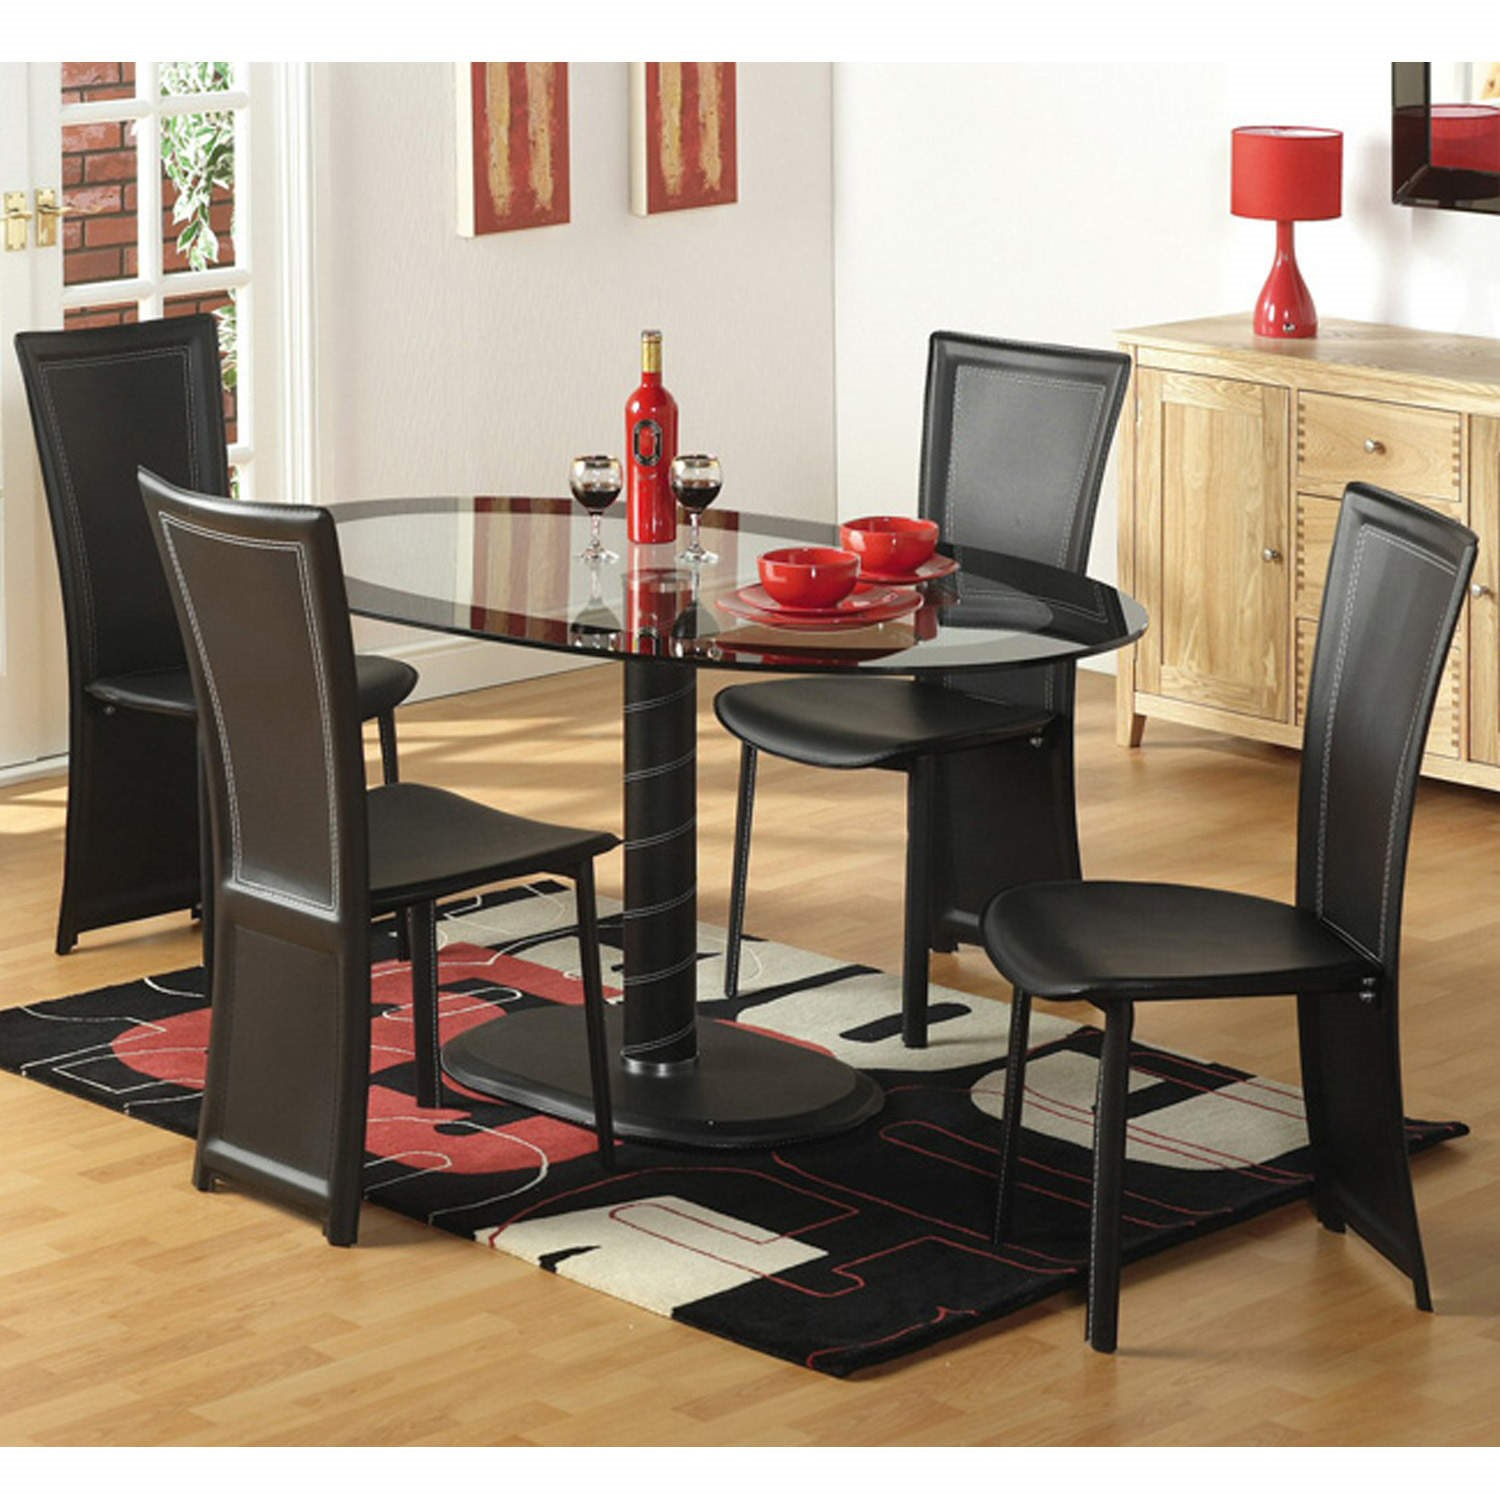 Picture of: Grade A1 Seconique Cameo Oval Dining Set Oval Glass Dining Table 4 Black Faux Leather Dining Chairs Furniture123